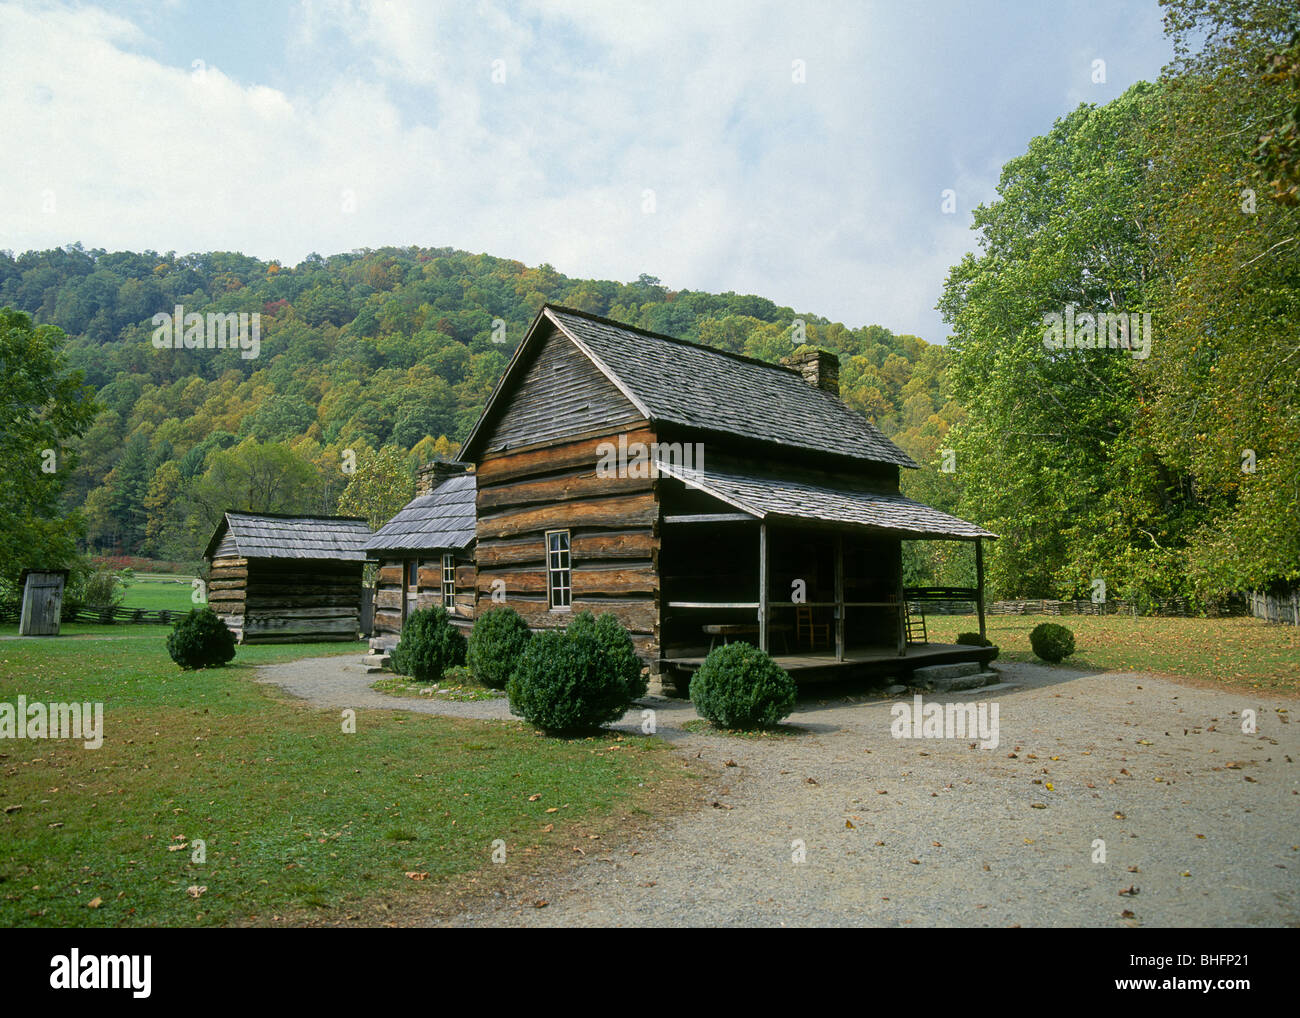 Hand hued log cabins for sell my marketing journey for Hand hewn log cabin for sale